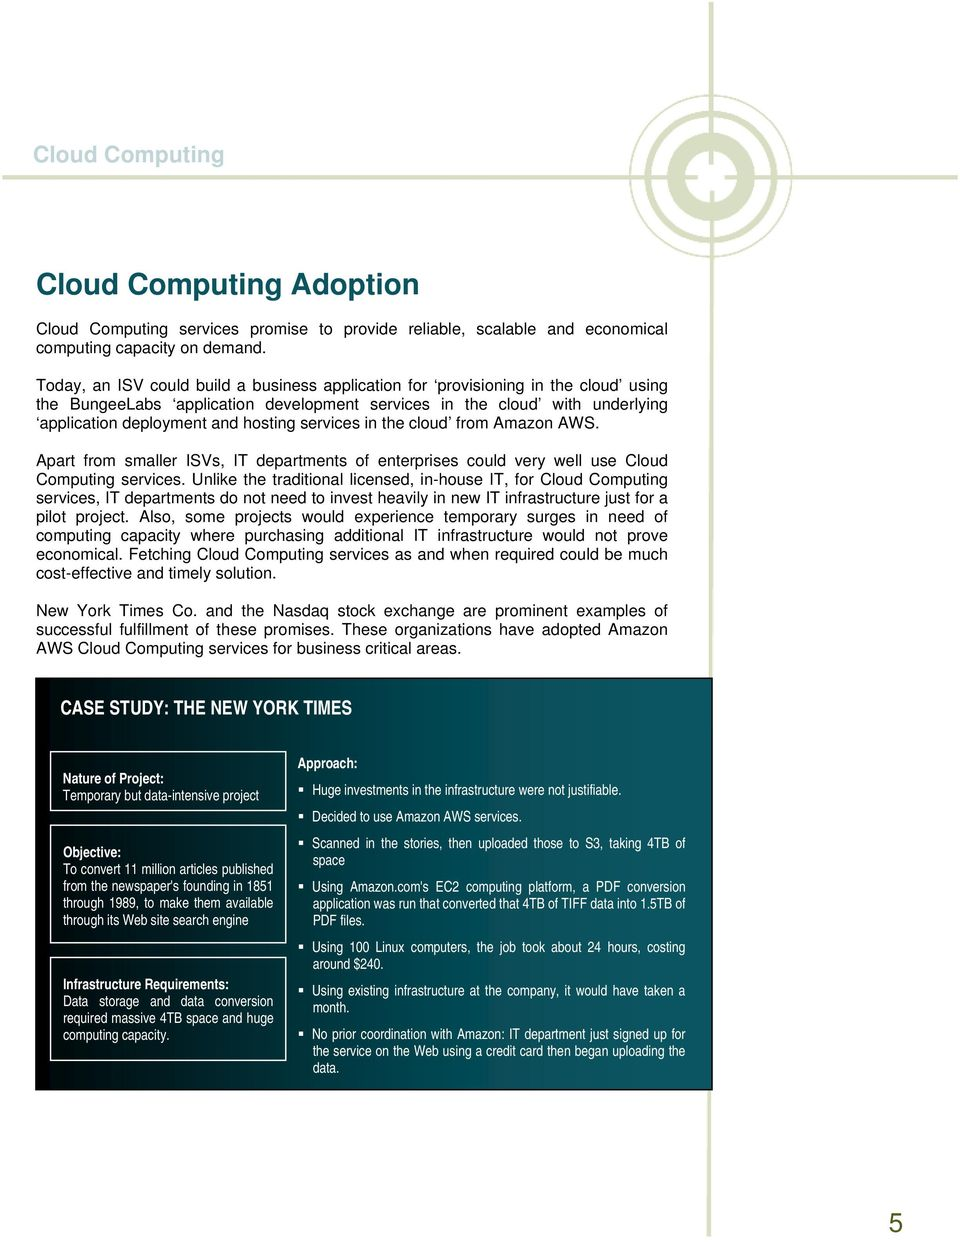 services in the cloud from Amazon AWS. Apart from smaller ISVs, IT departments of enterprises could very well use Cloud Computing services.